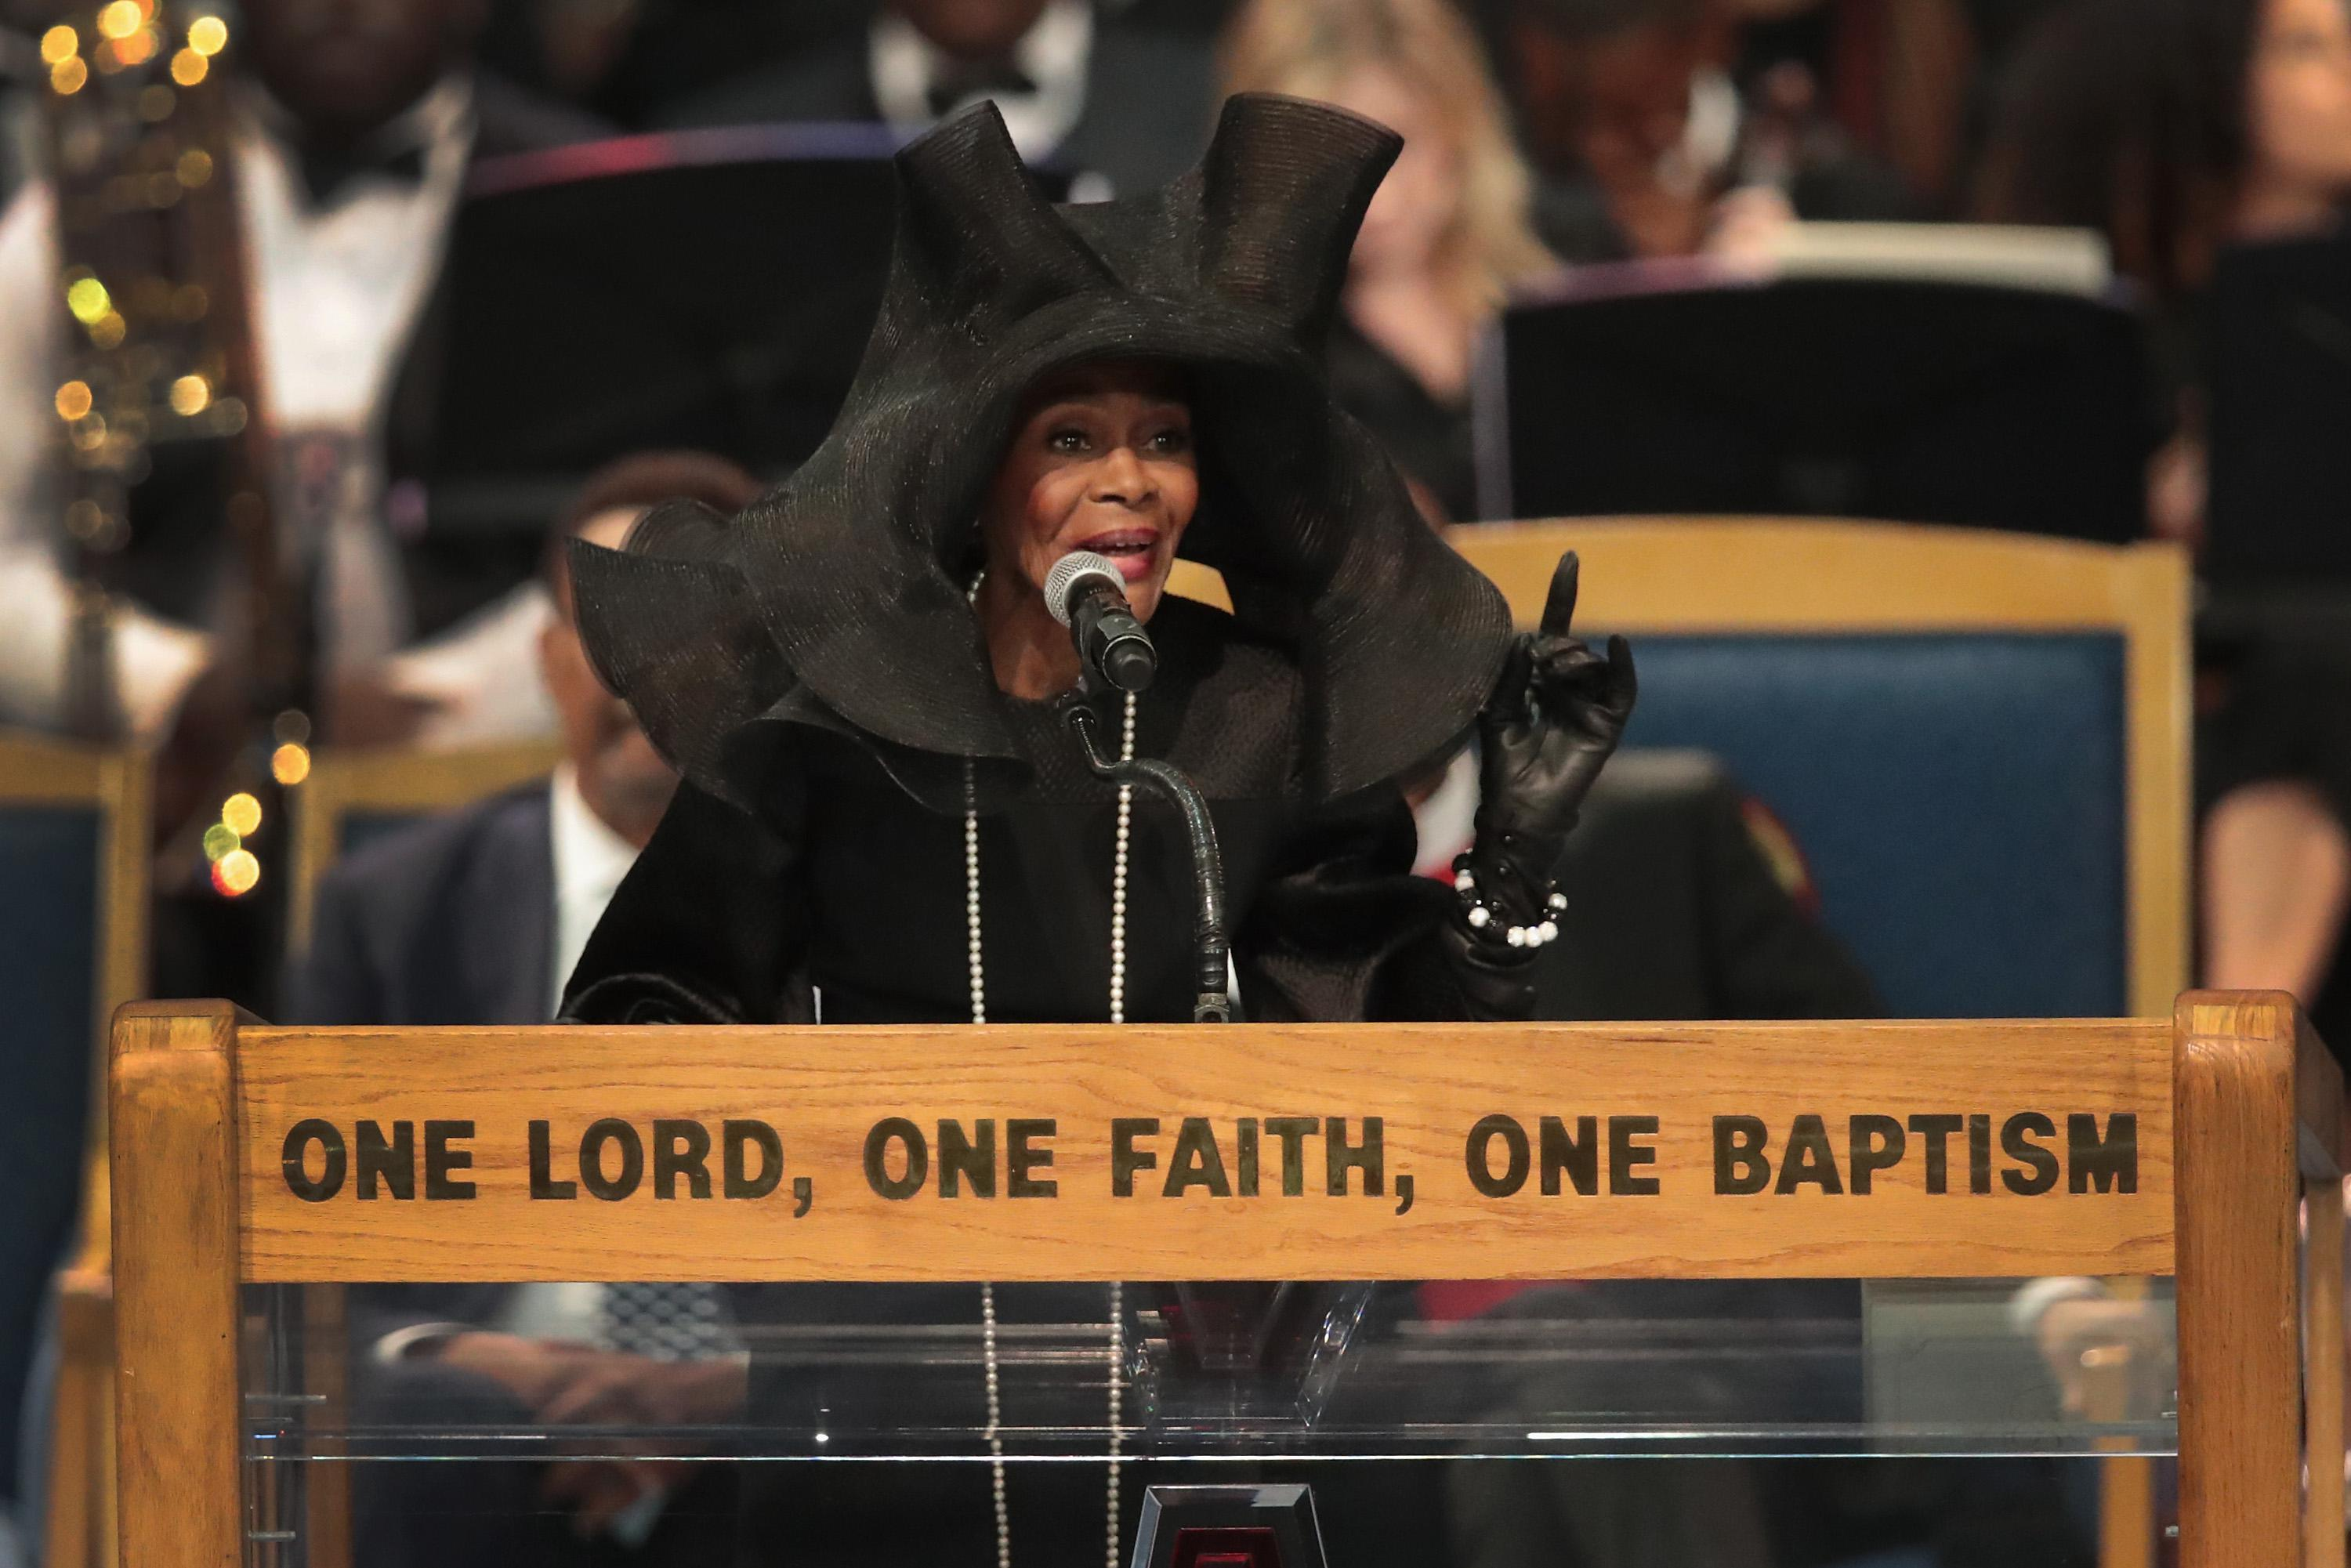 Cicely Tyson speaks at a podium at Aretha Franklin's funeral in a gigantic black floppy hat.